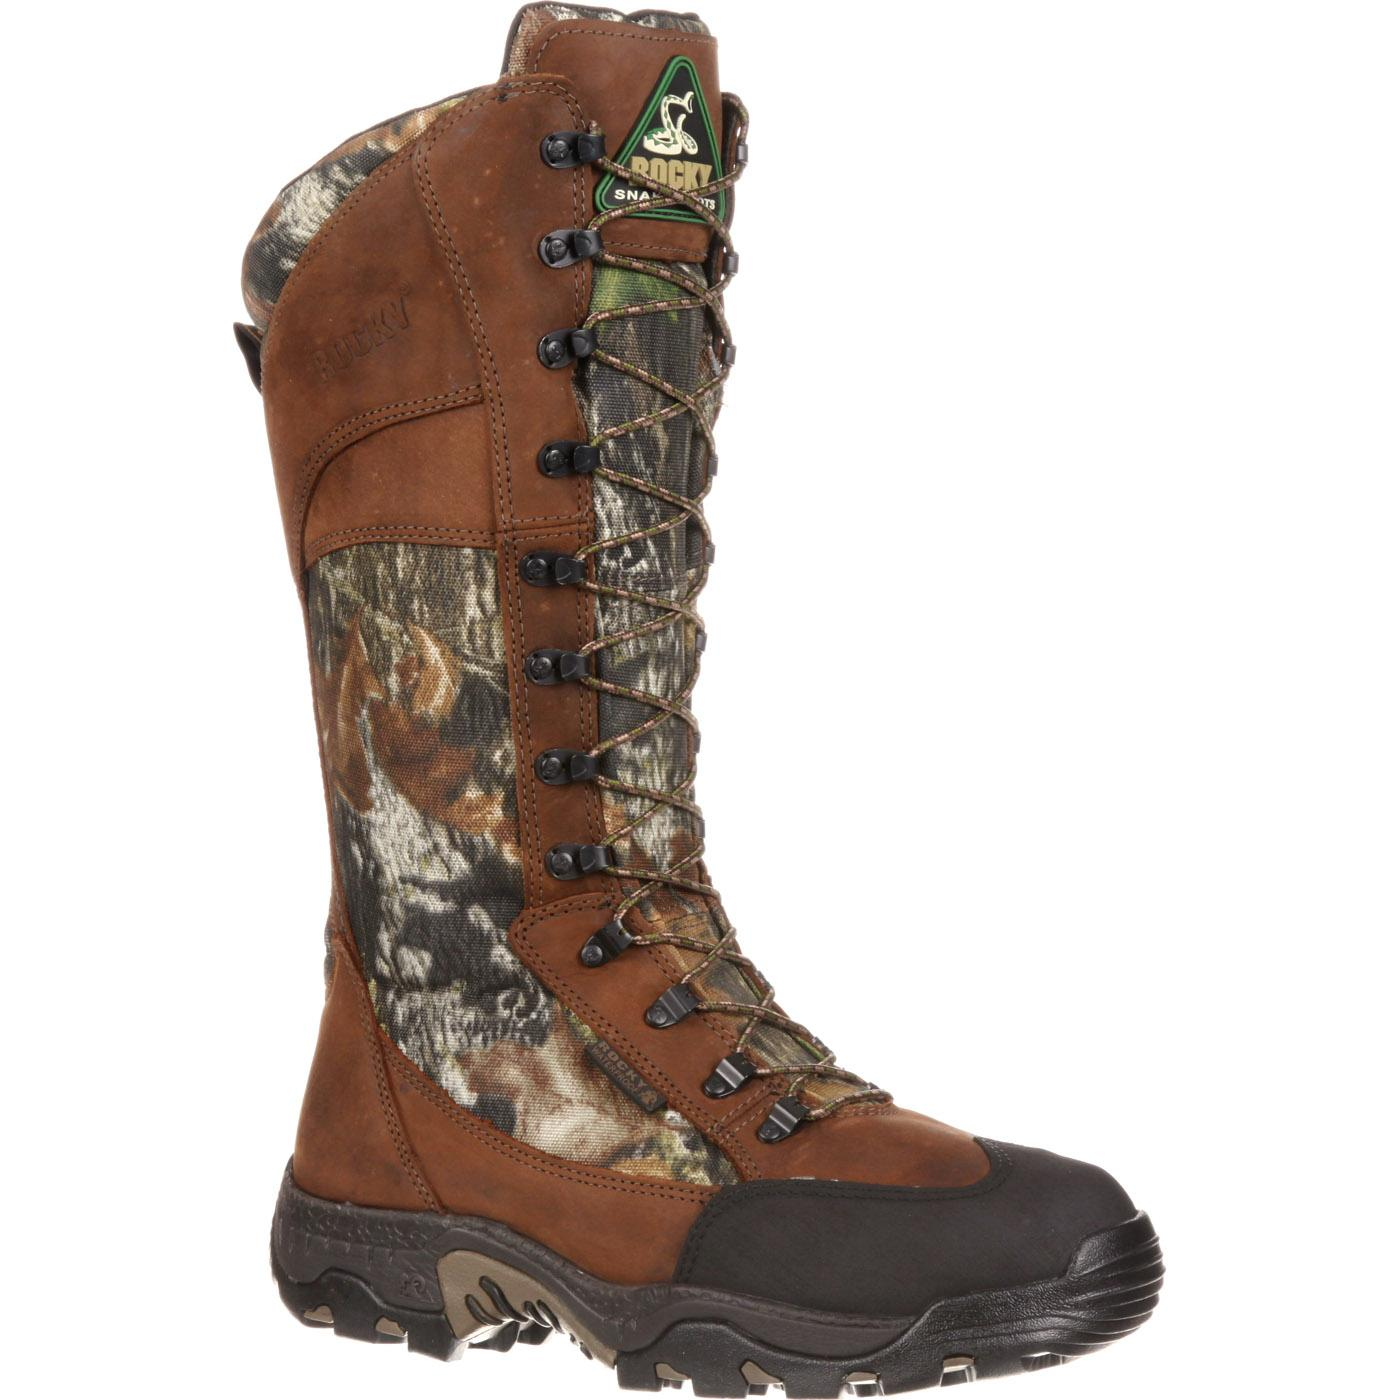 Rocky Classic Lynx Waterproof Side-Zip Snake Boots, , large